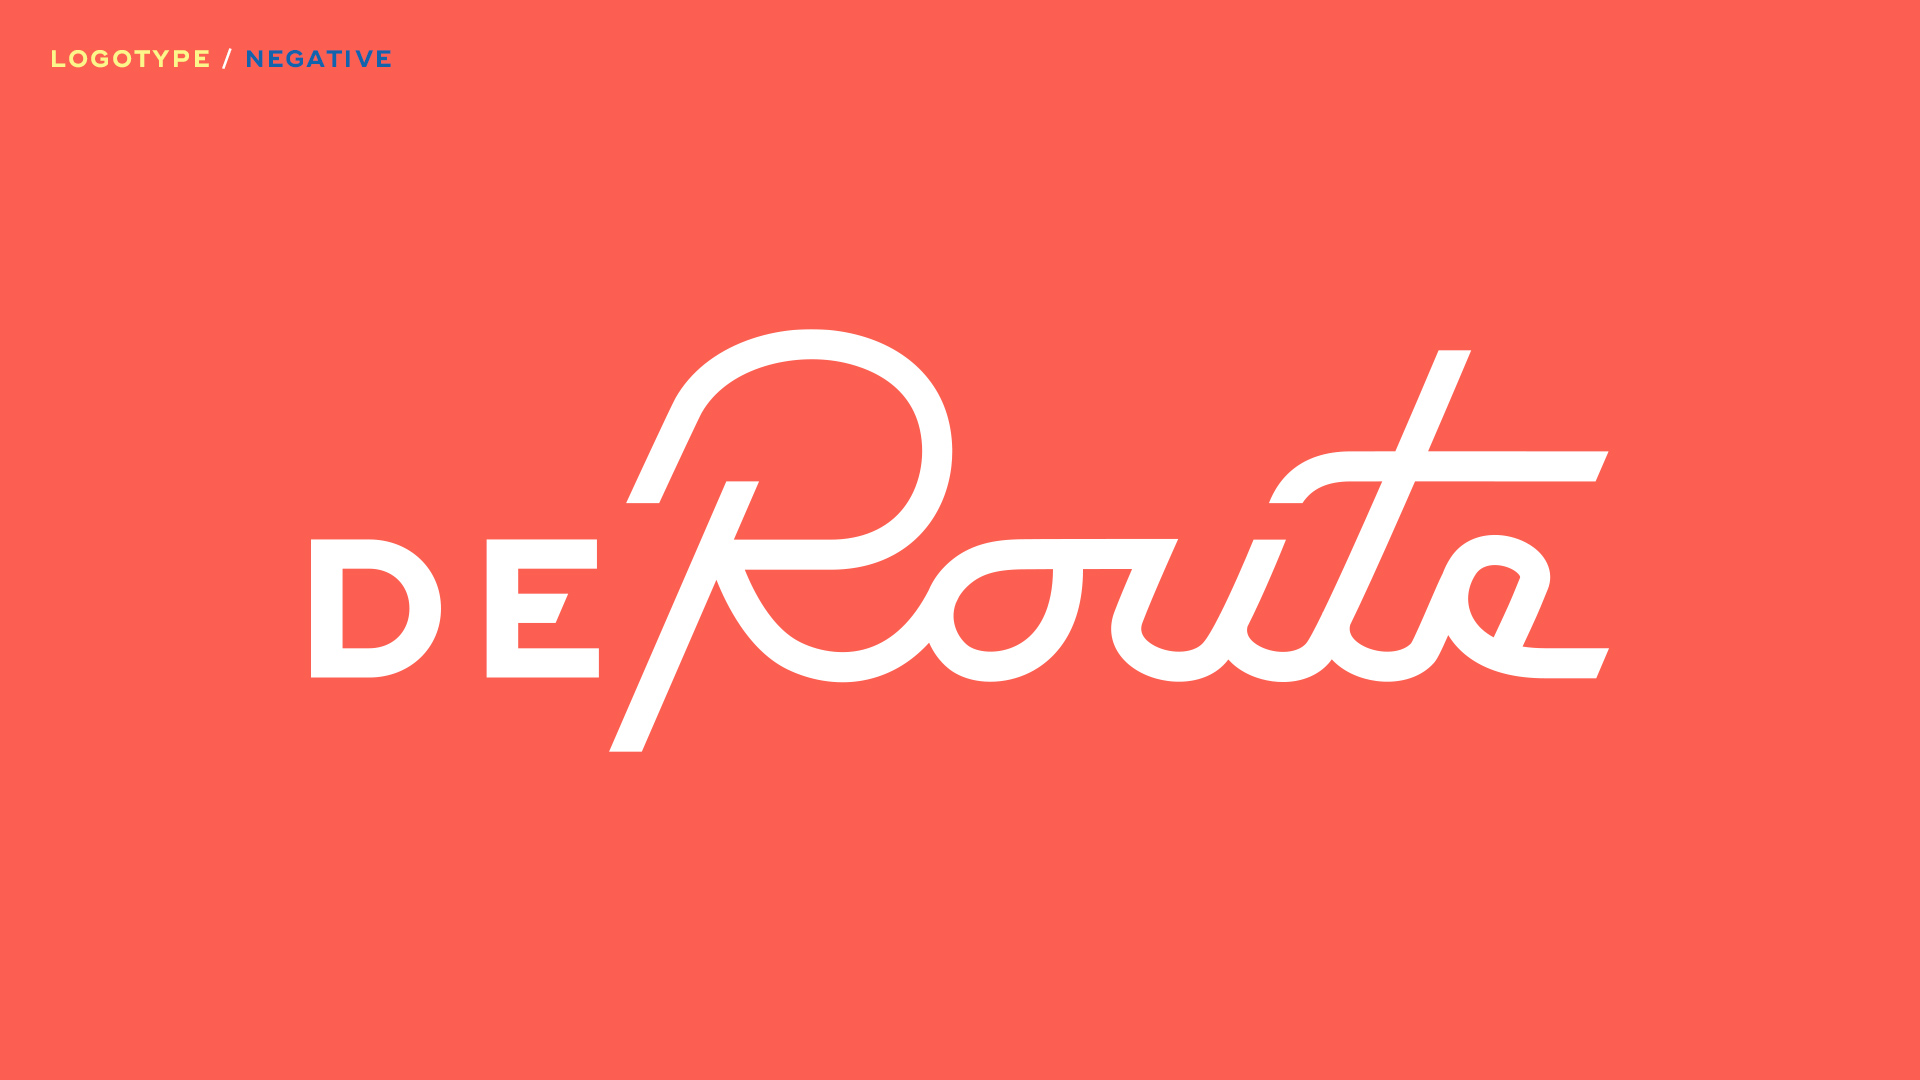 DeRoute-Visual-Identity-by-Emtisquare-4